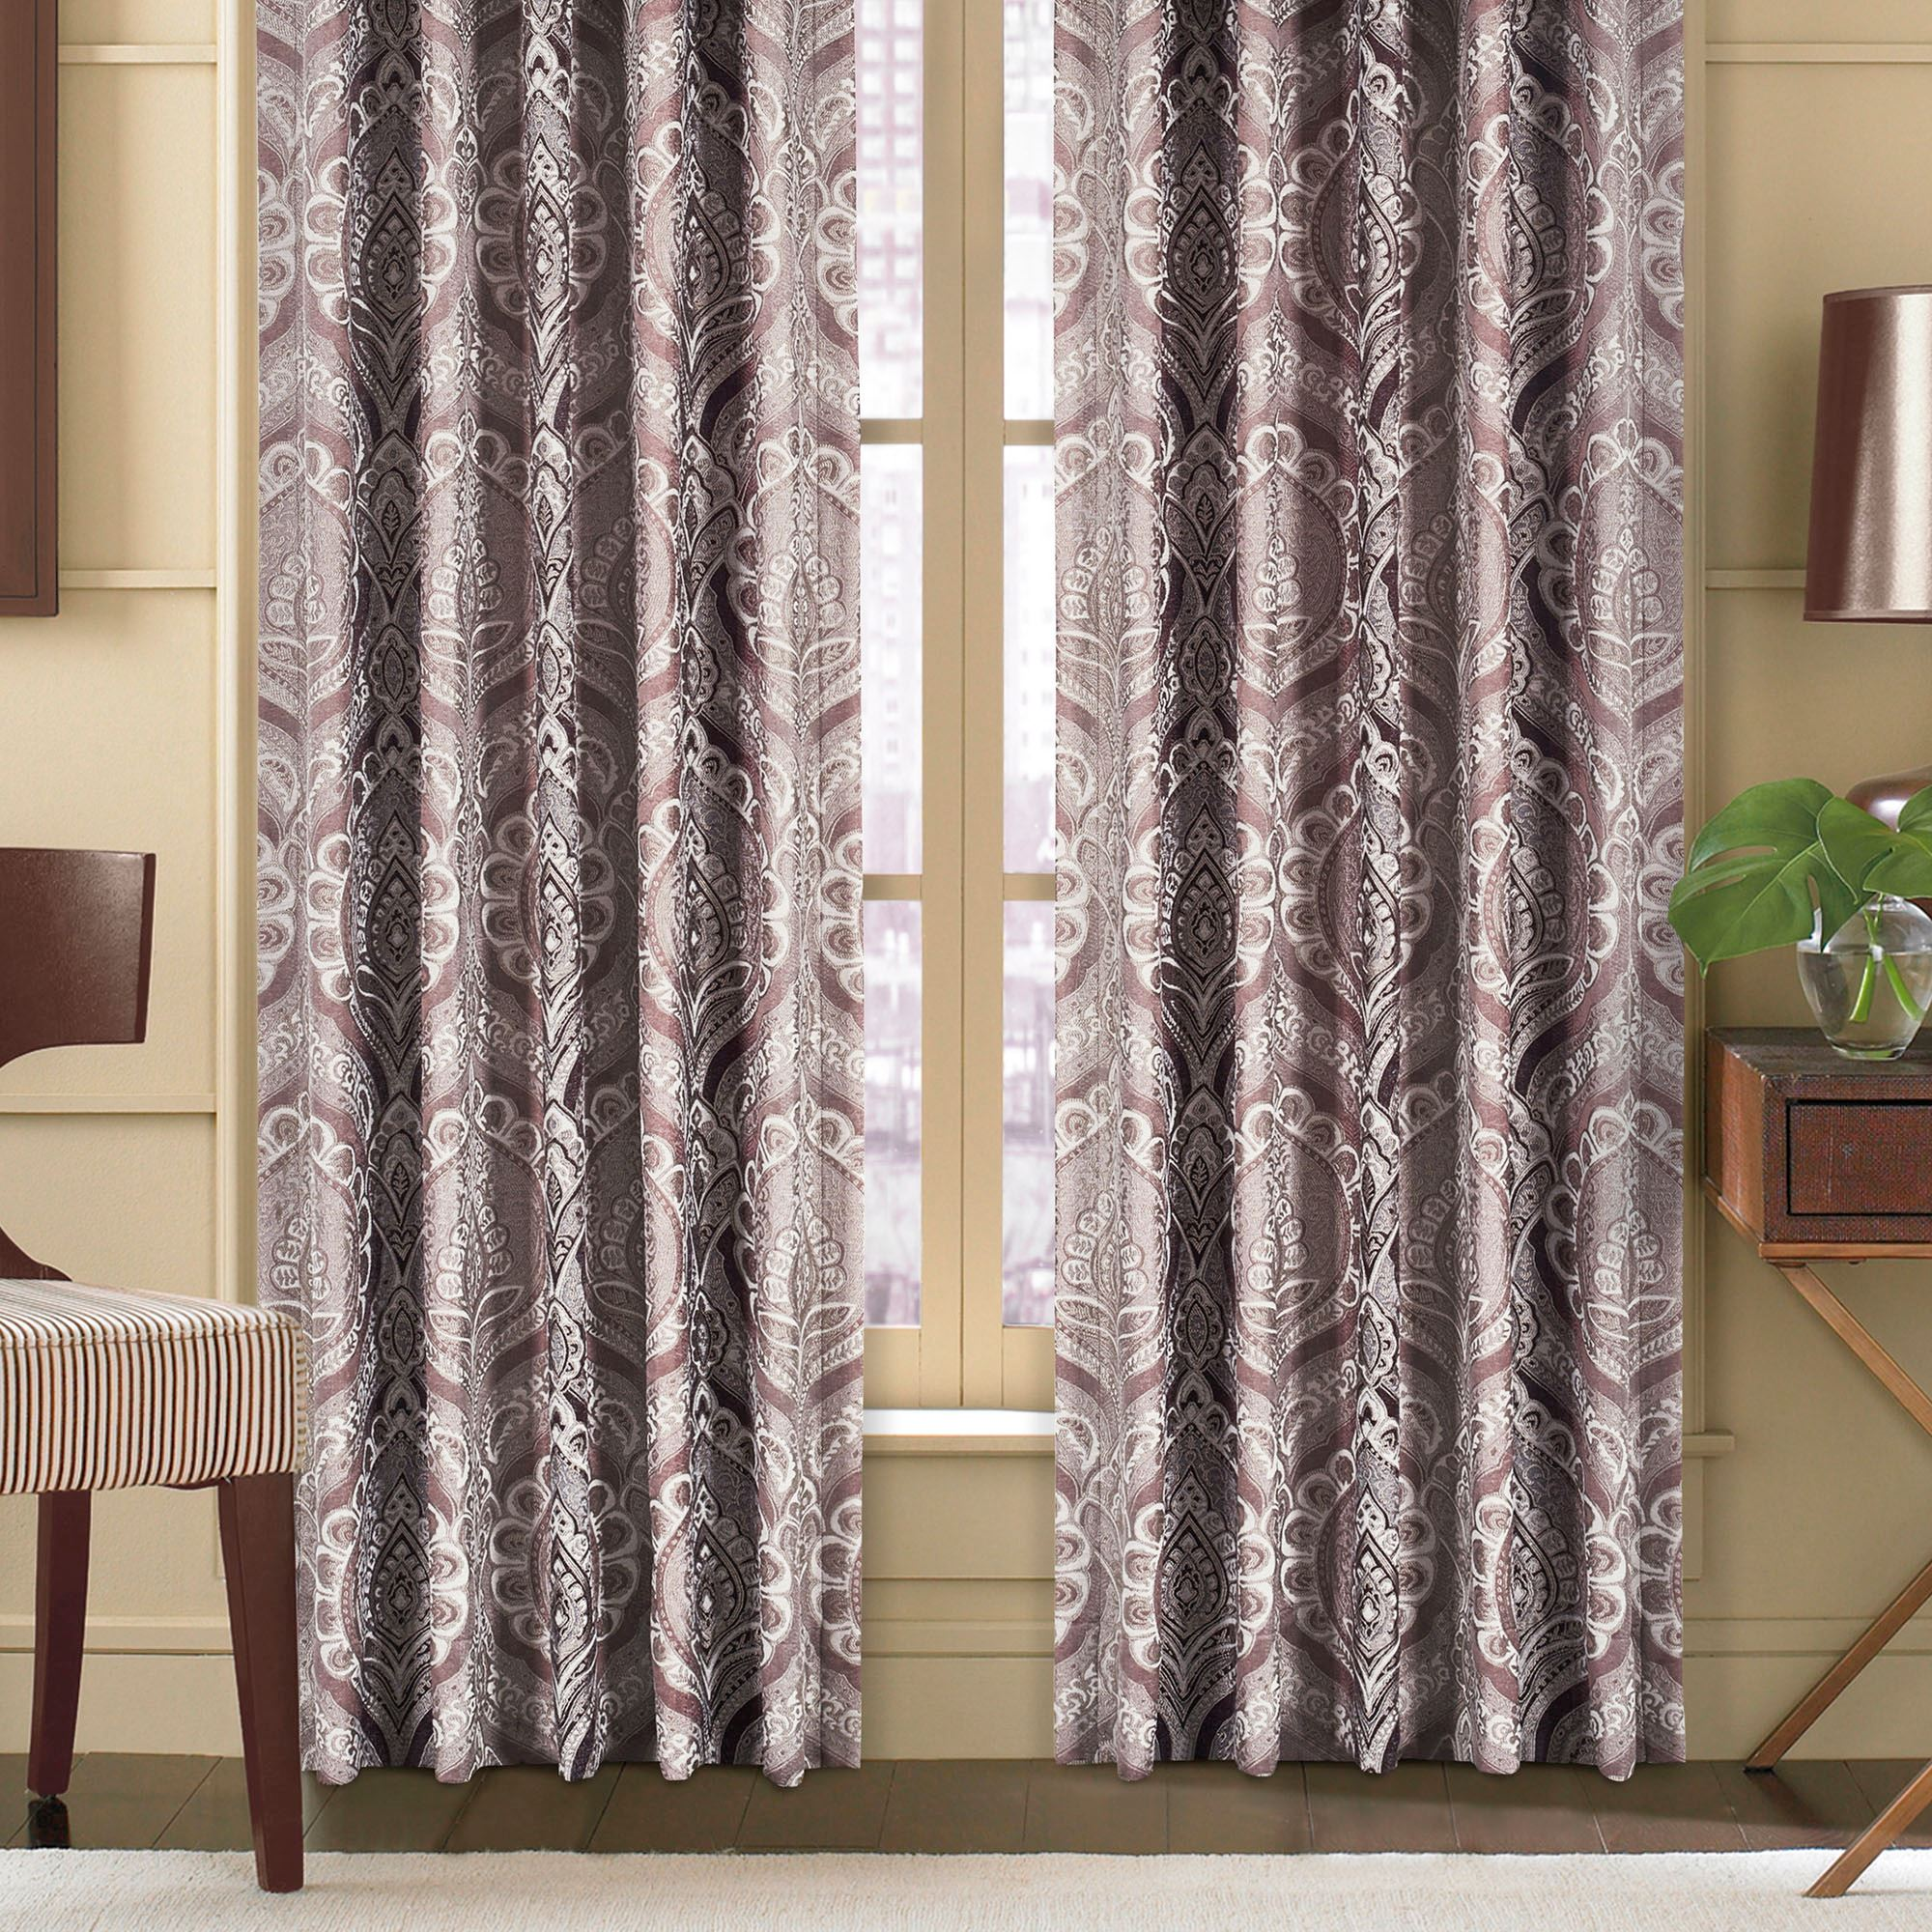 expand gardnera panel to window curtains gold queen inch york panels click curtain shop j new top grommet